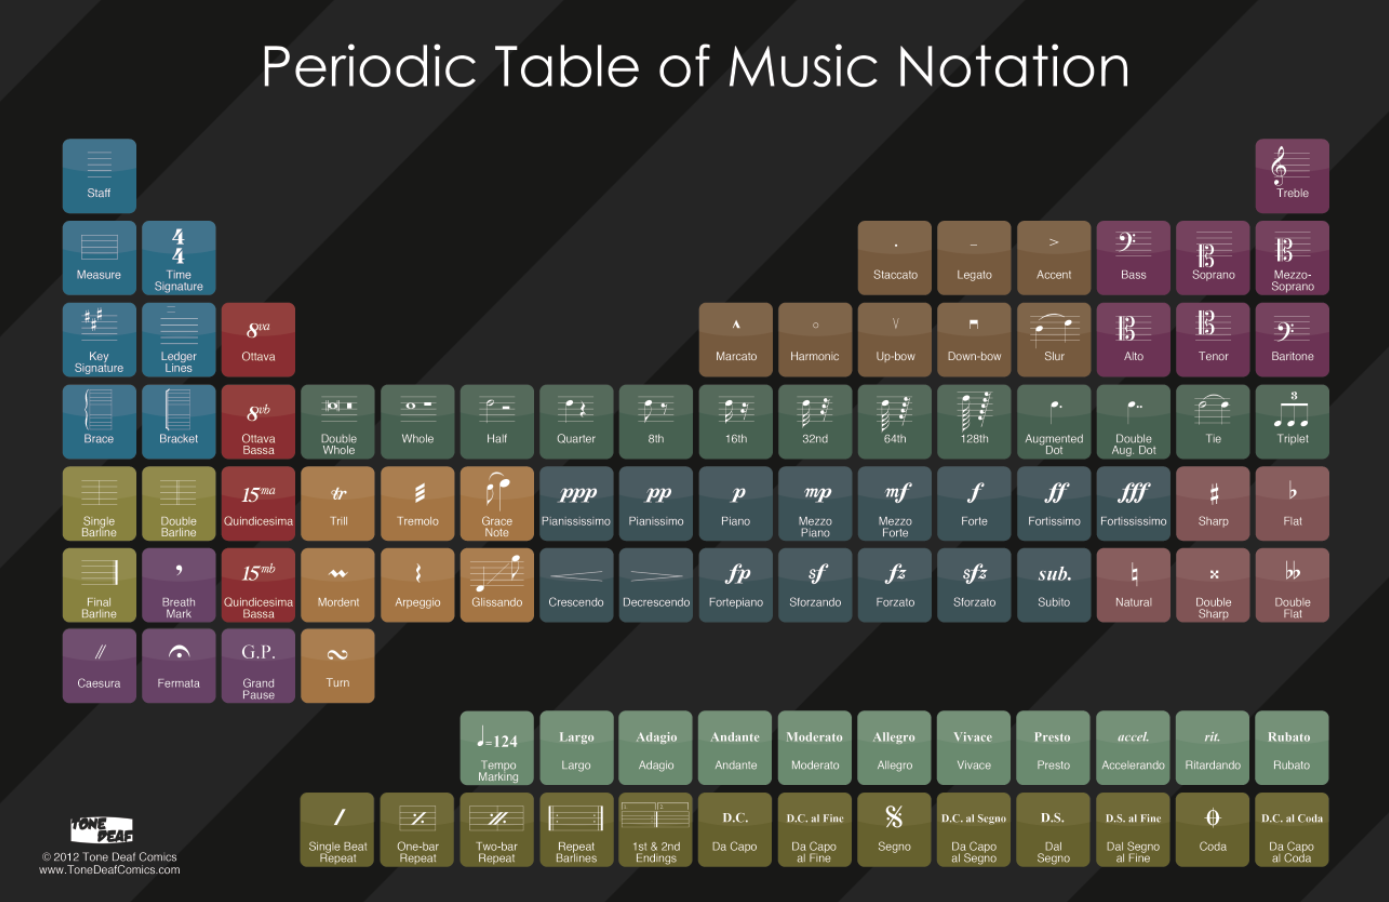 Periodic table of music notation periodic table music education periodic table of music notation haha never have seen this one before biocorpaavc Image collections